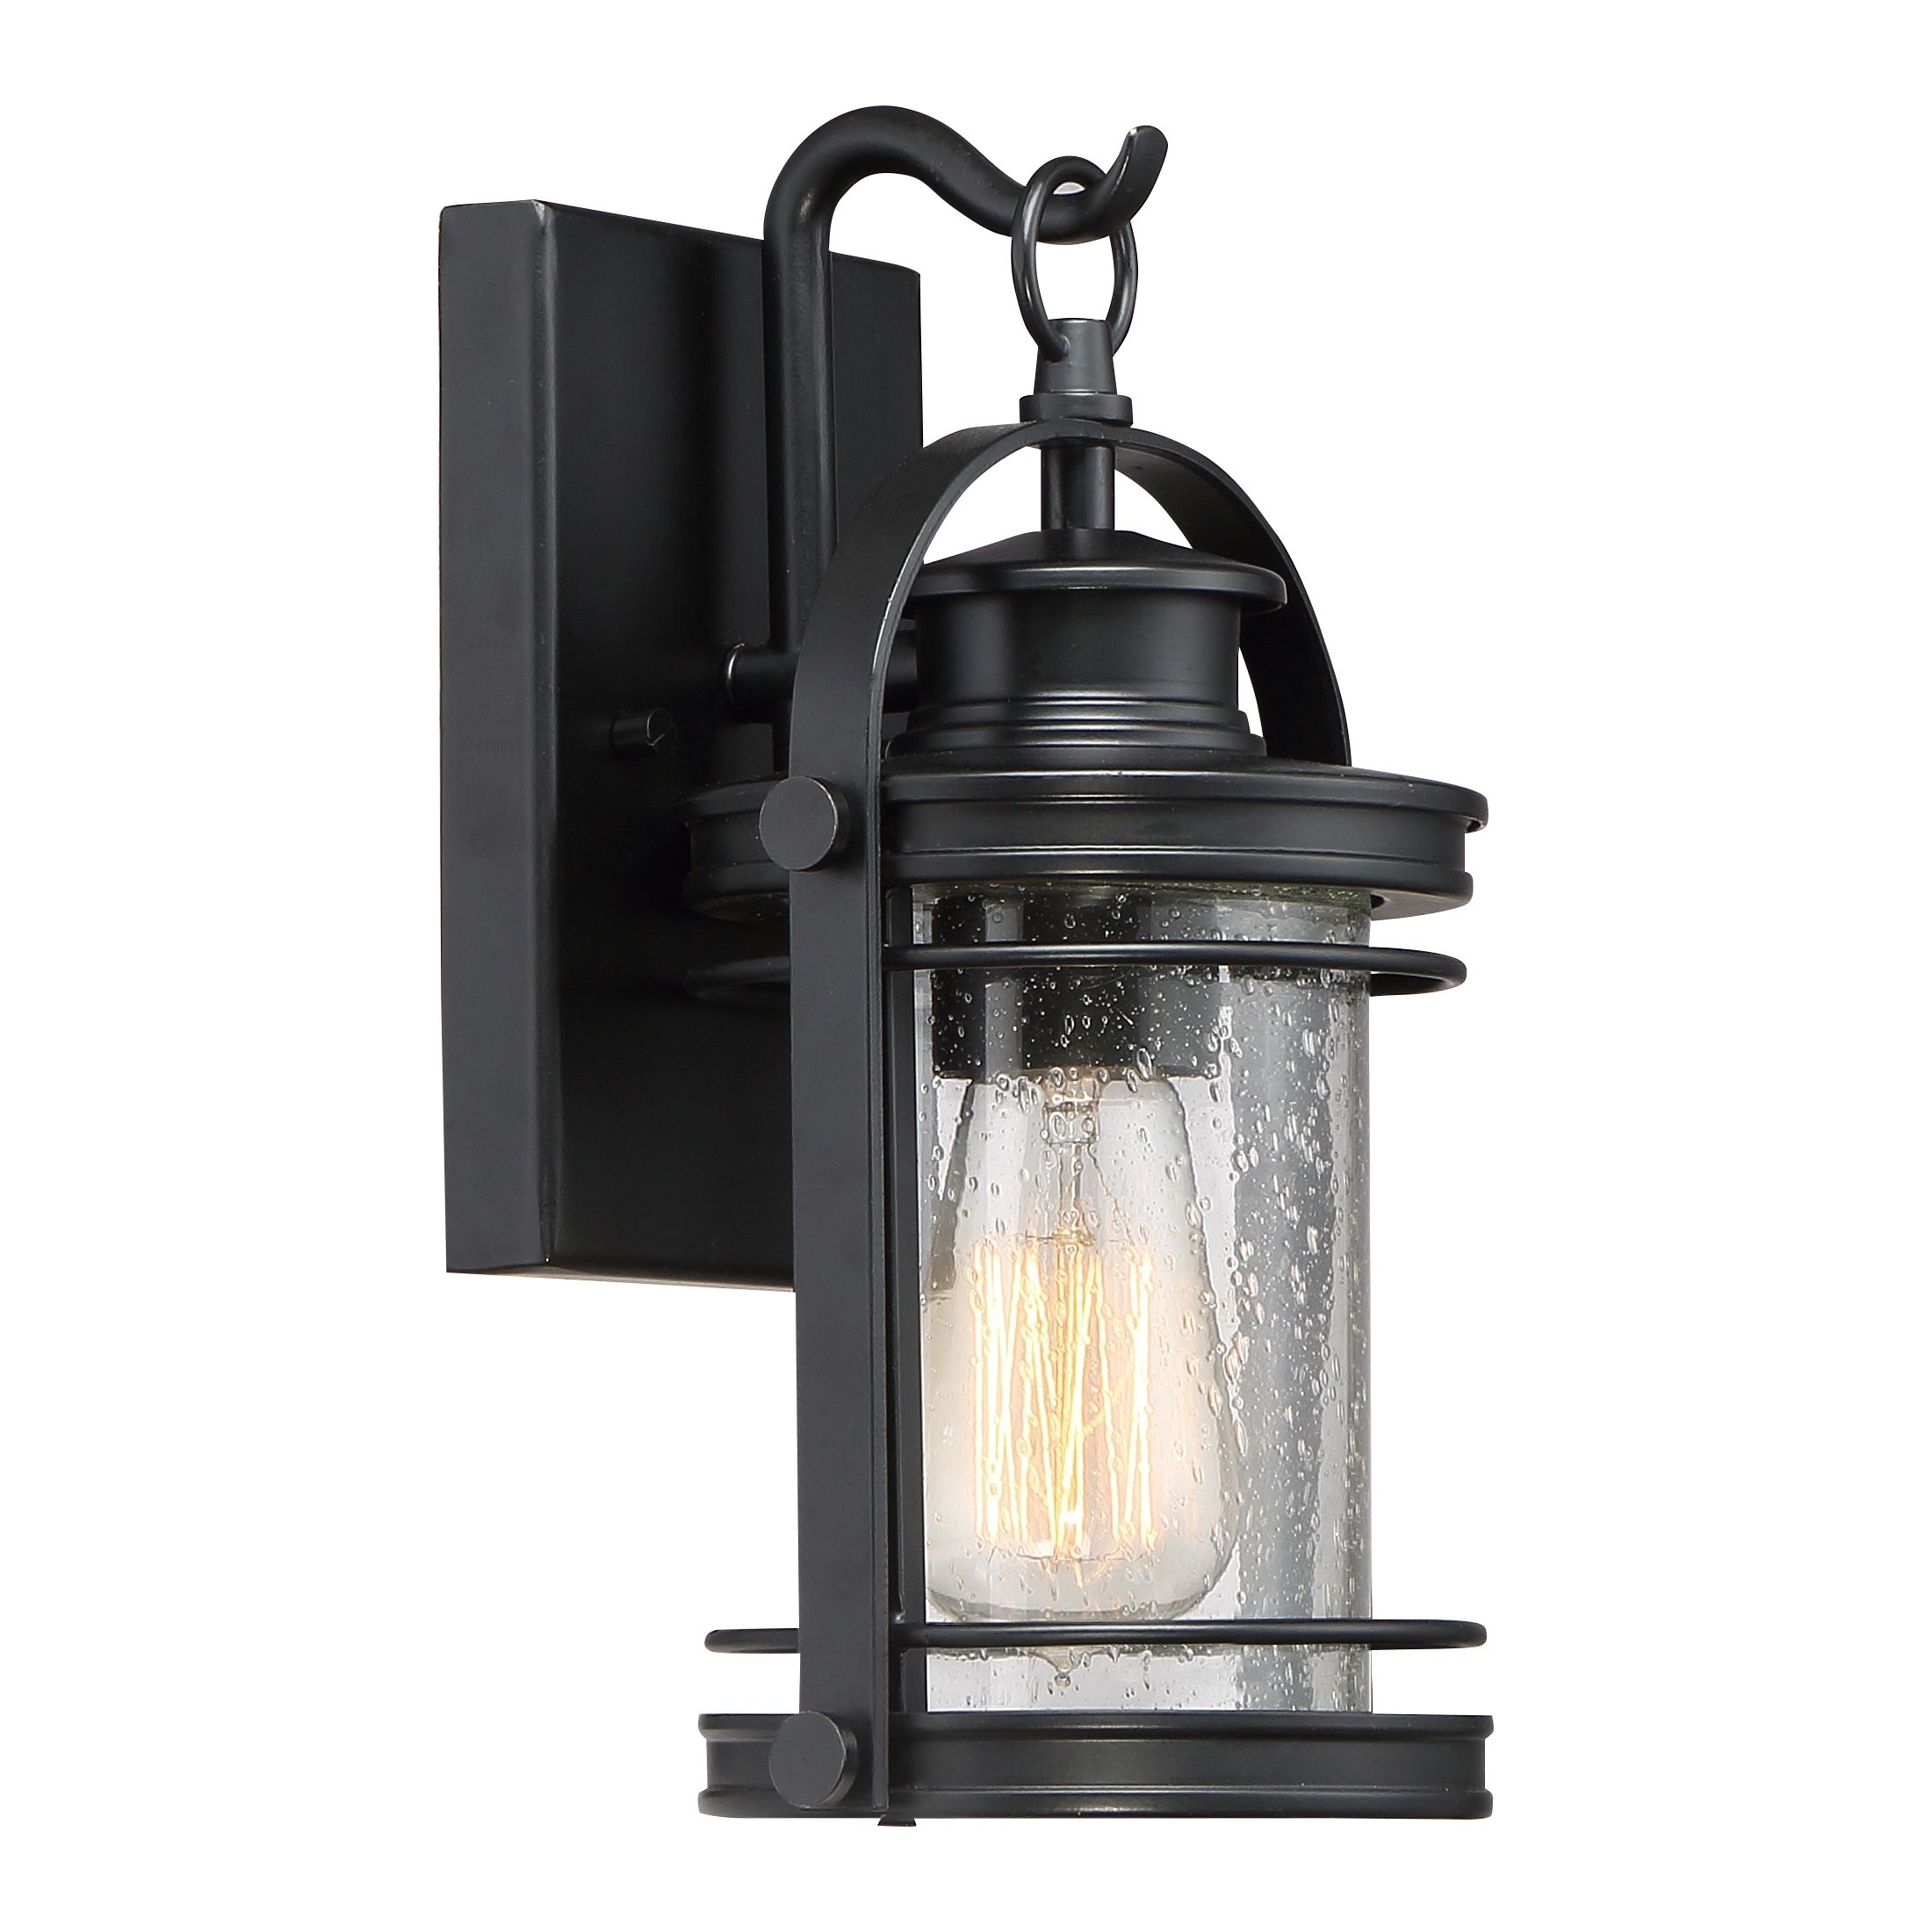 Booker Outdoor Lantern   Quoizel for Quoizel Outdoor Lanterns (Image 1 of 20)